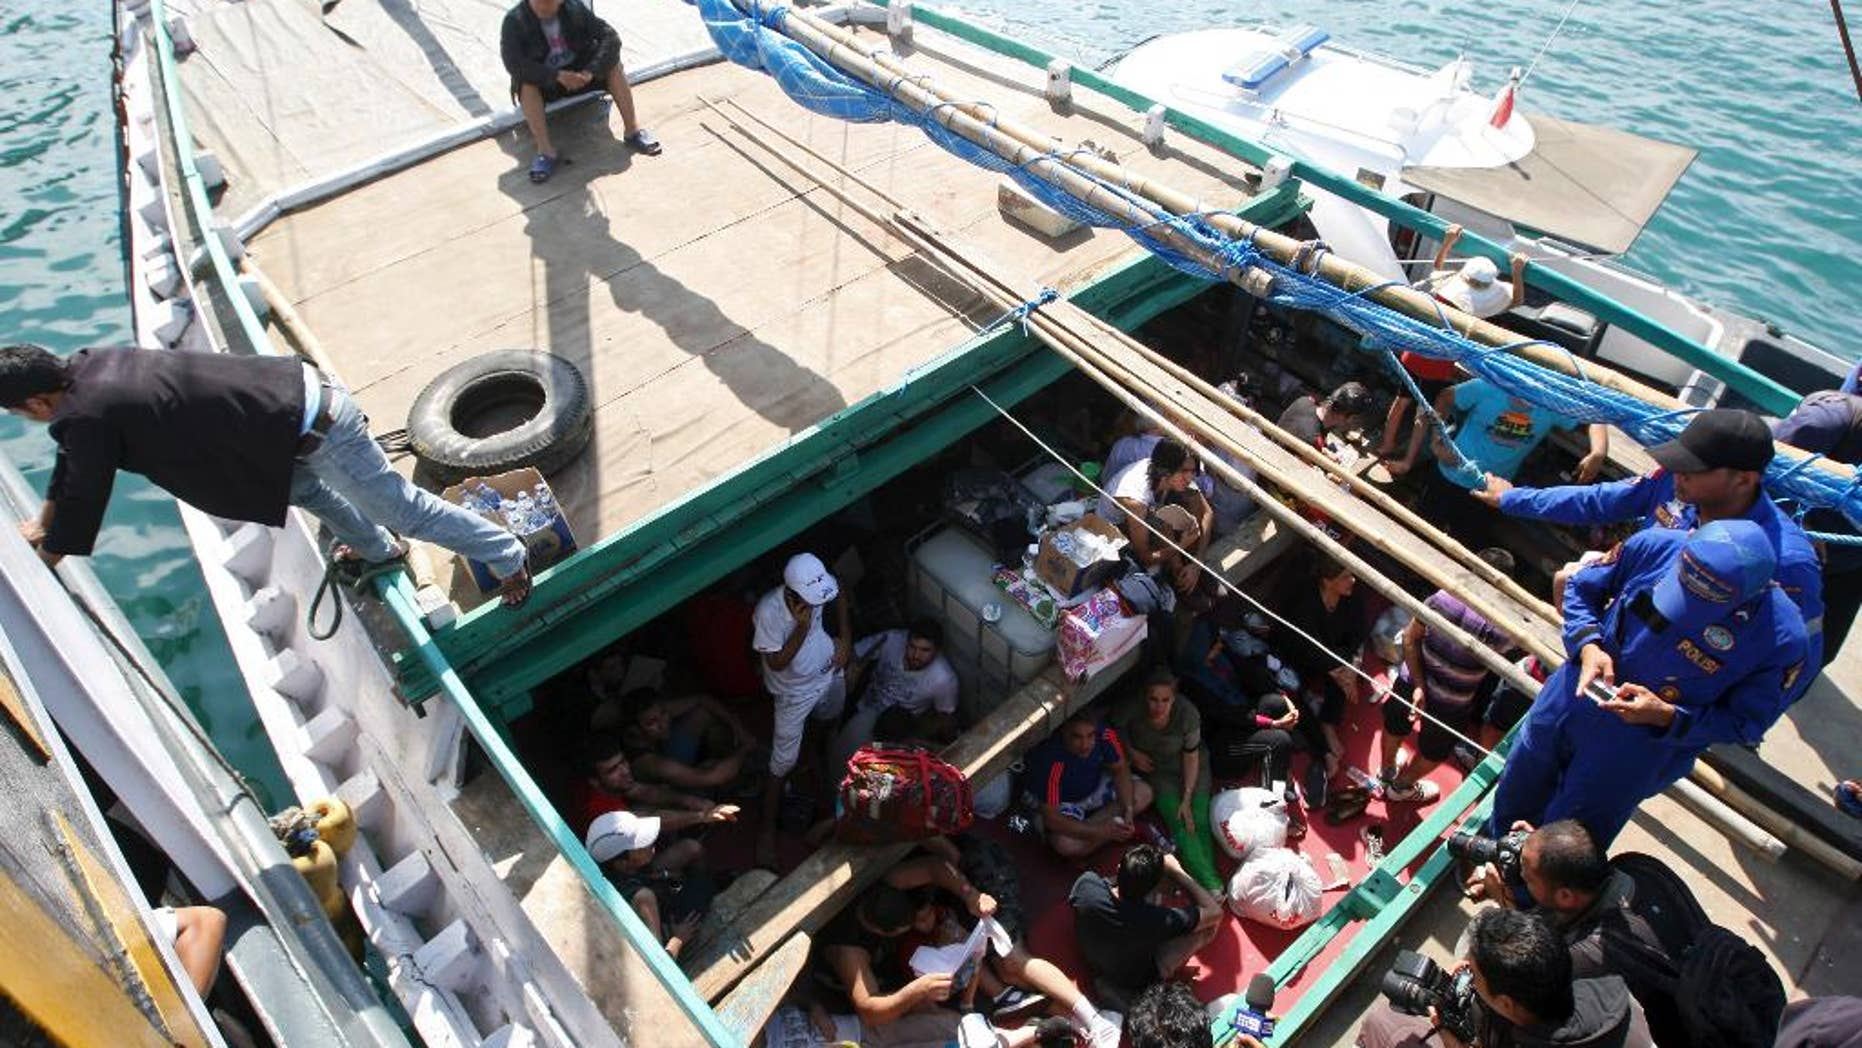 FILE - In this May 12, 2013 file photo, Iranian asylum seekers who were caught in Indonesian waters while sailing to Australia sit on a boat at Benoa port in Bali, Indonesia. Papua New Guinea's Supreme Court on Tuesday, April 26, 2016 ruled that Australia's detention of asylum seekers at a facility on the country's Manus Island is unconstitutional. The Pacific island nation's ruling could jeopardize Australia's divisive policy of refusing to accept any asylum seekers who attempt to reach its shores by boat. The country pays Papua New Guinea and the tiny Pacific island nation of Nauru to hold them in detention camps instead. (AP Photo/Firdia Lisnawati, File)